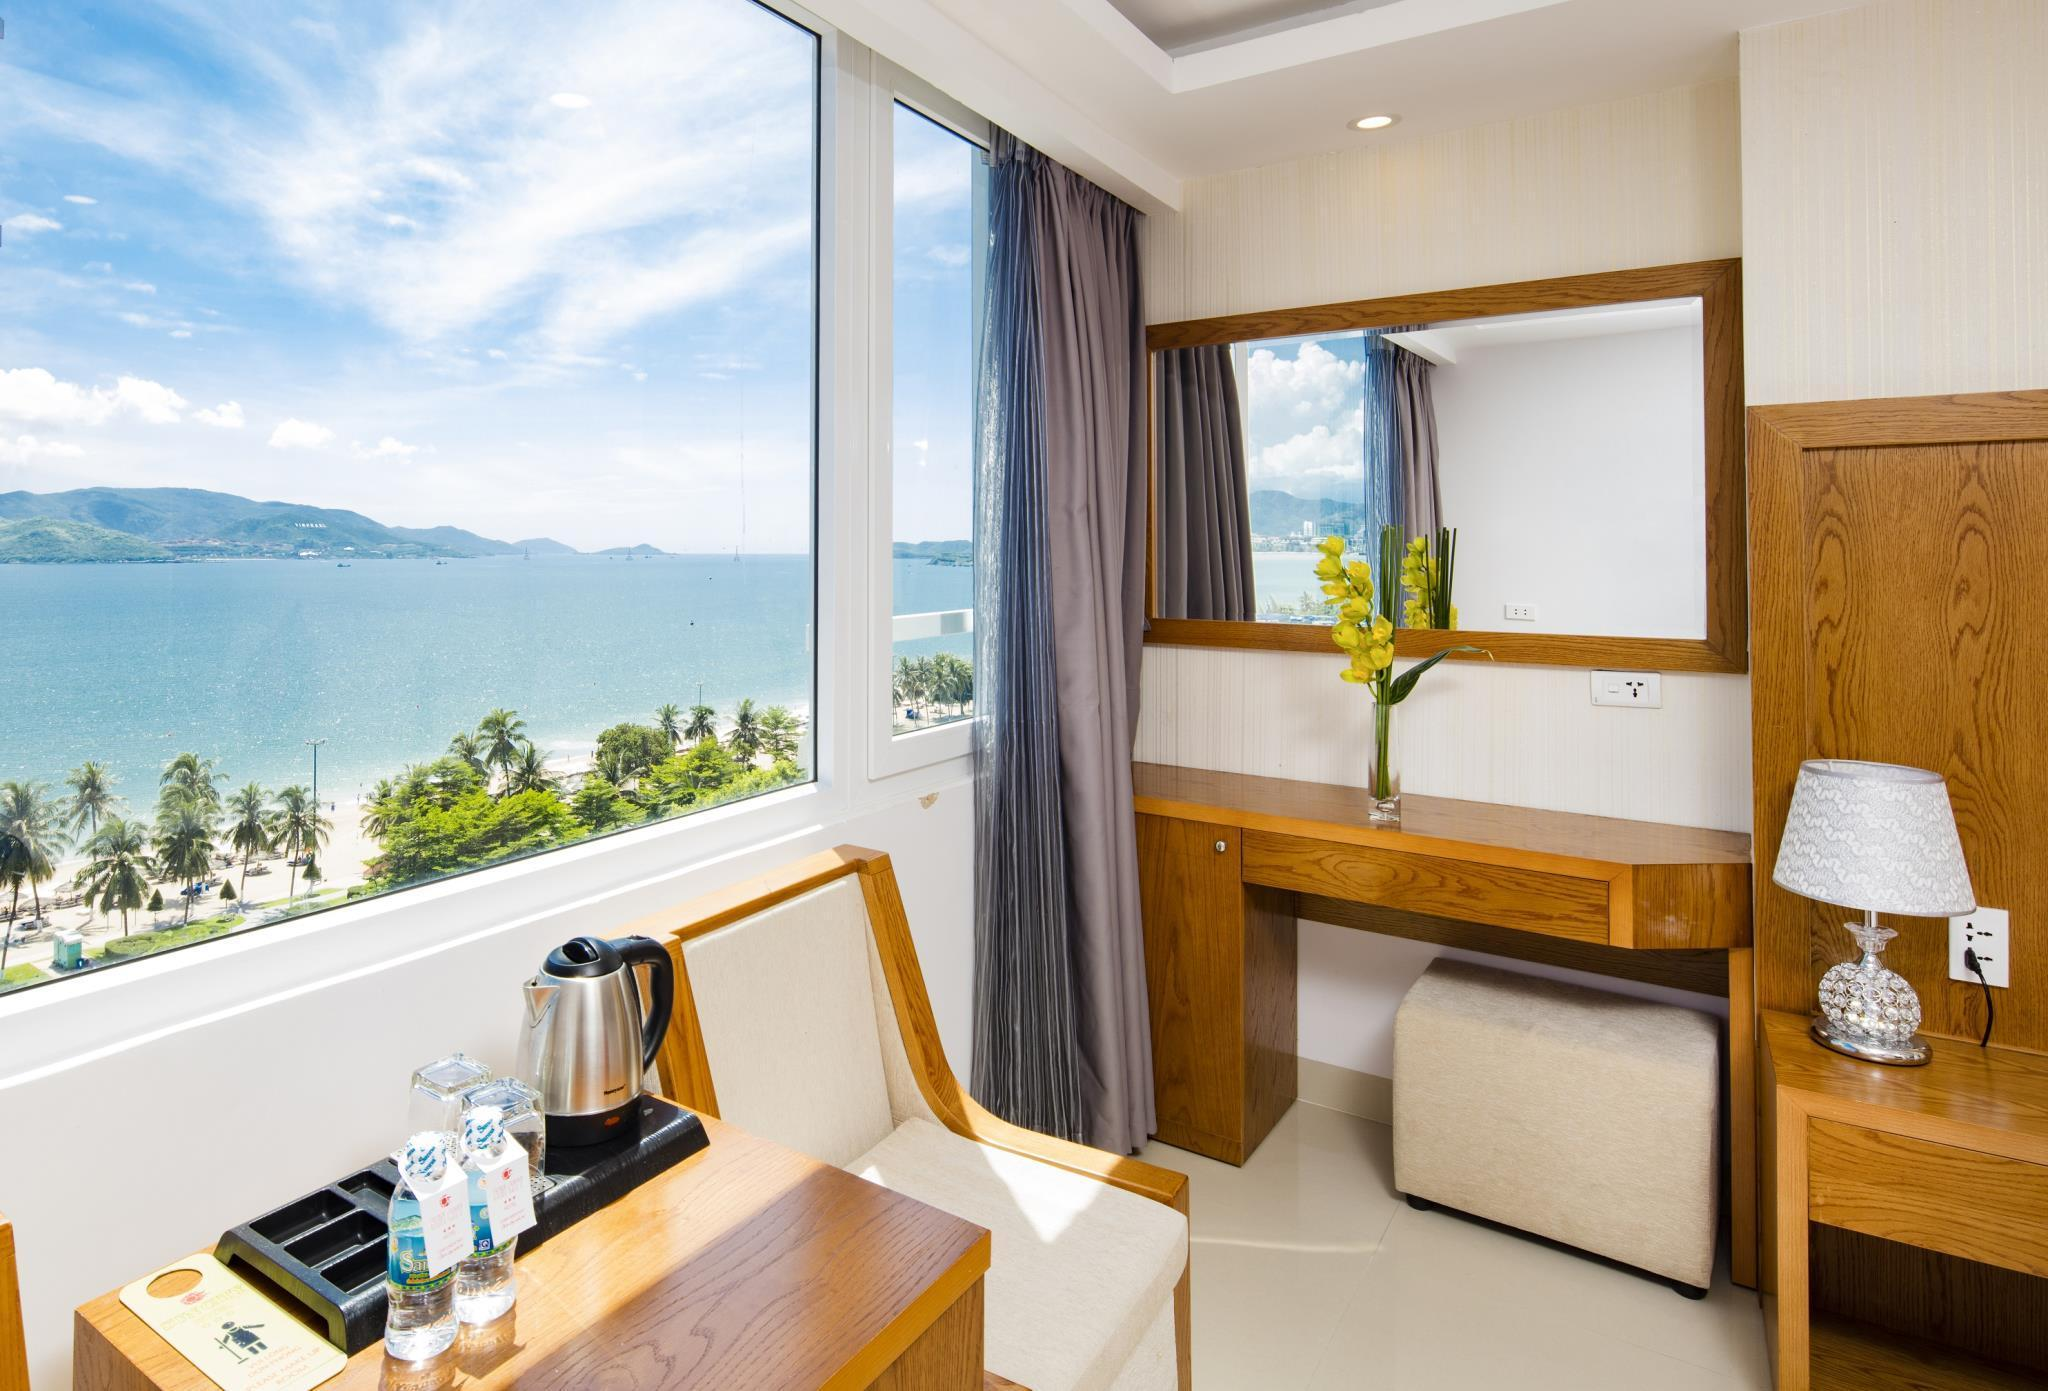 Deluxe Hướng biển giường đôi (Deluxe Sea View Double Bed)